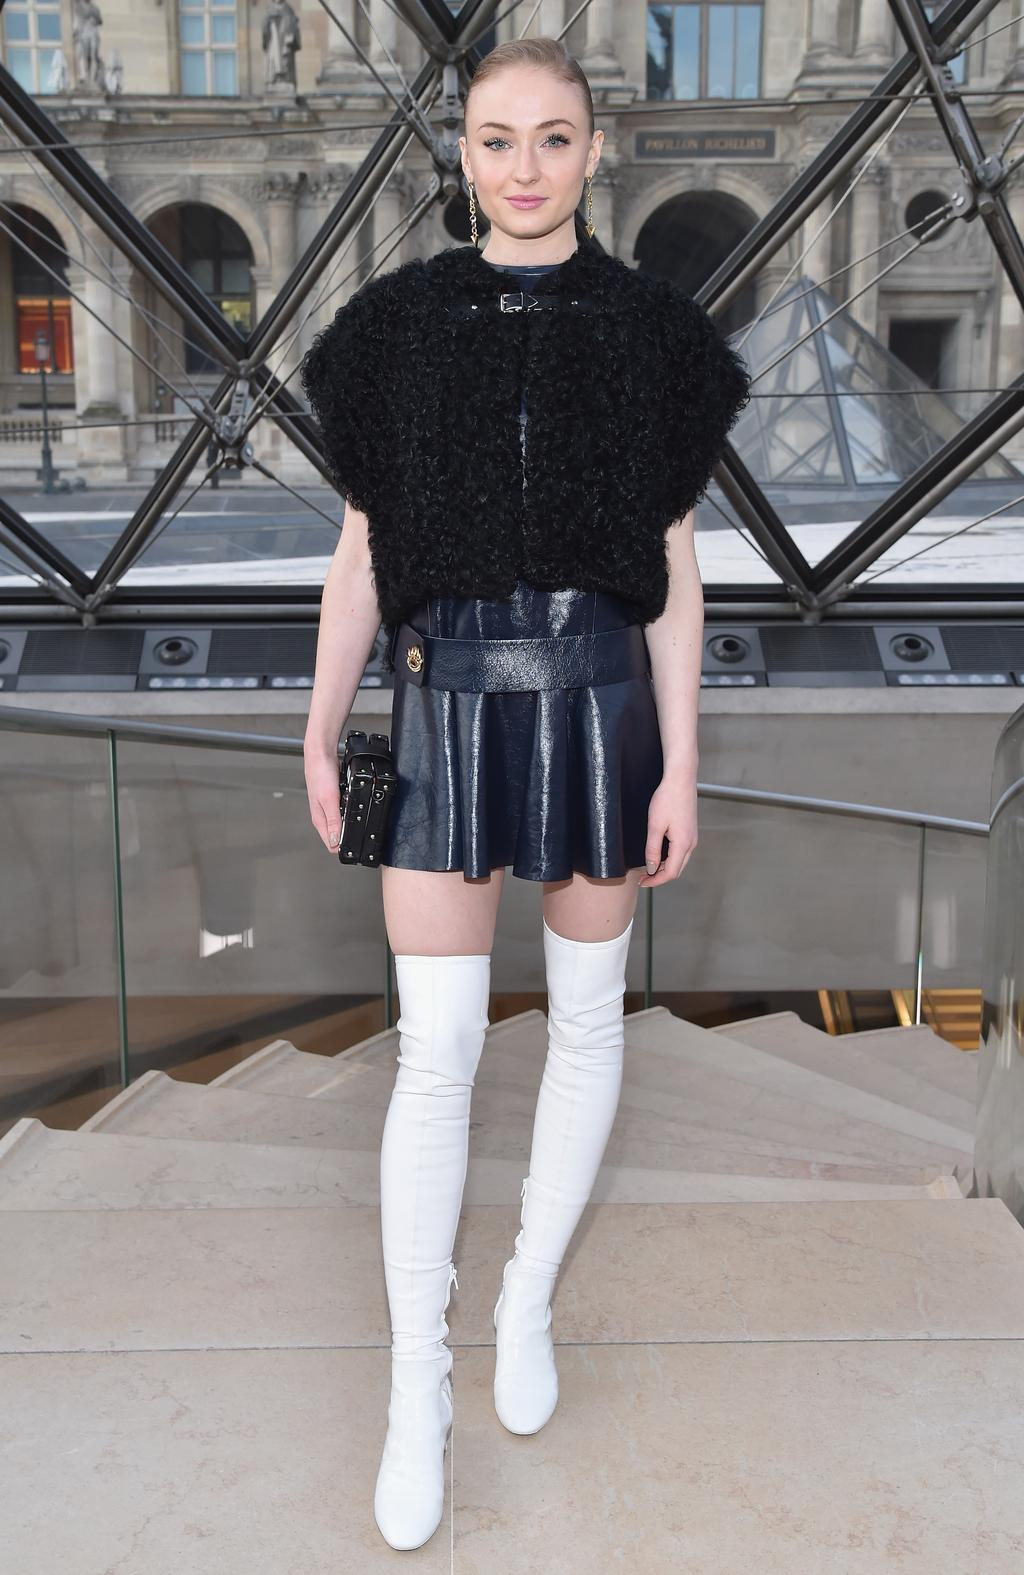 Sophie Turner attends the Louis Vuitton show as part of the Paris Fashion Week Womenswear Fall/Winter 2017/2018 on March 7, 2017 in Paris, France. Picture: Getty